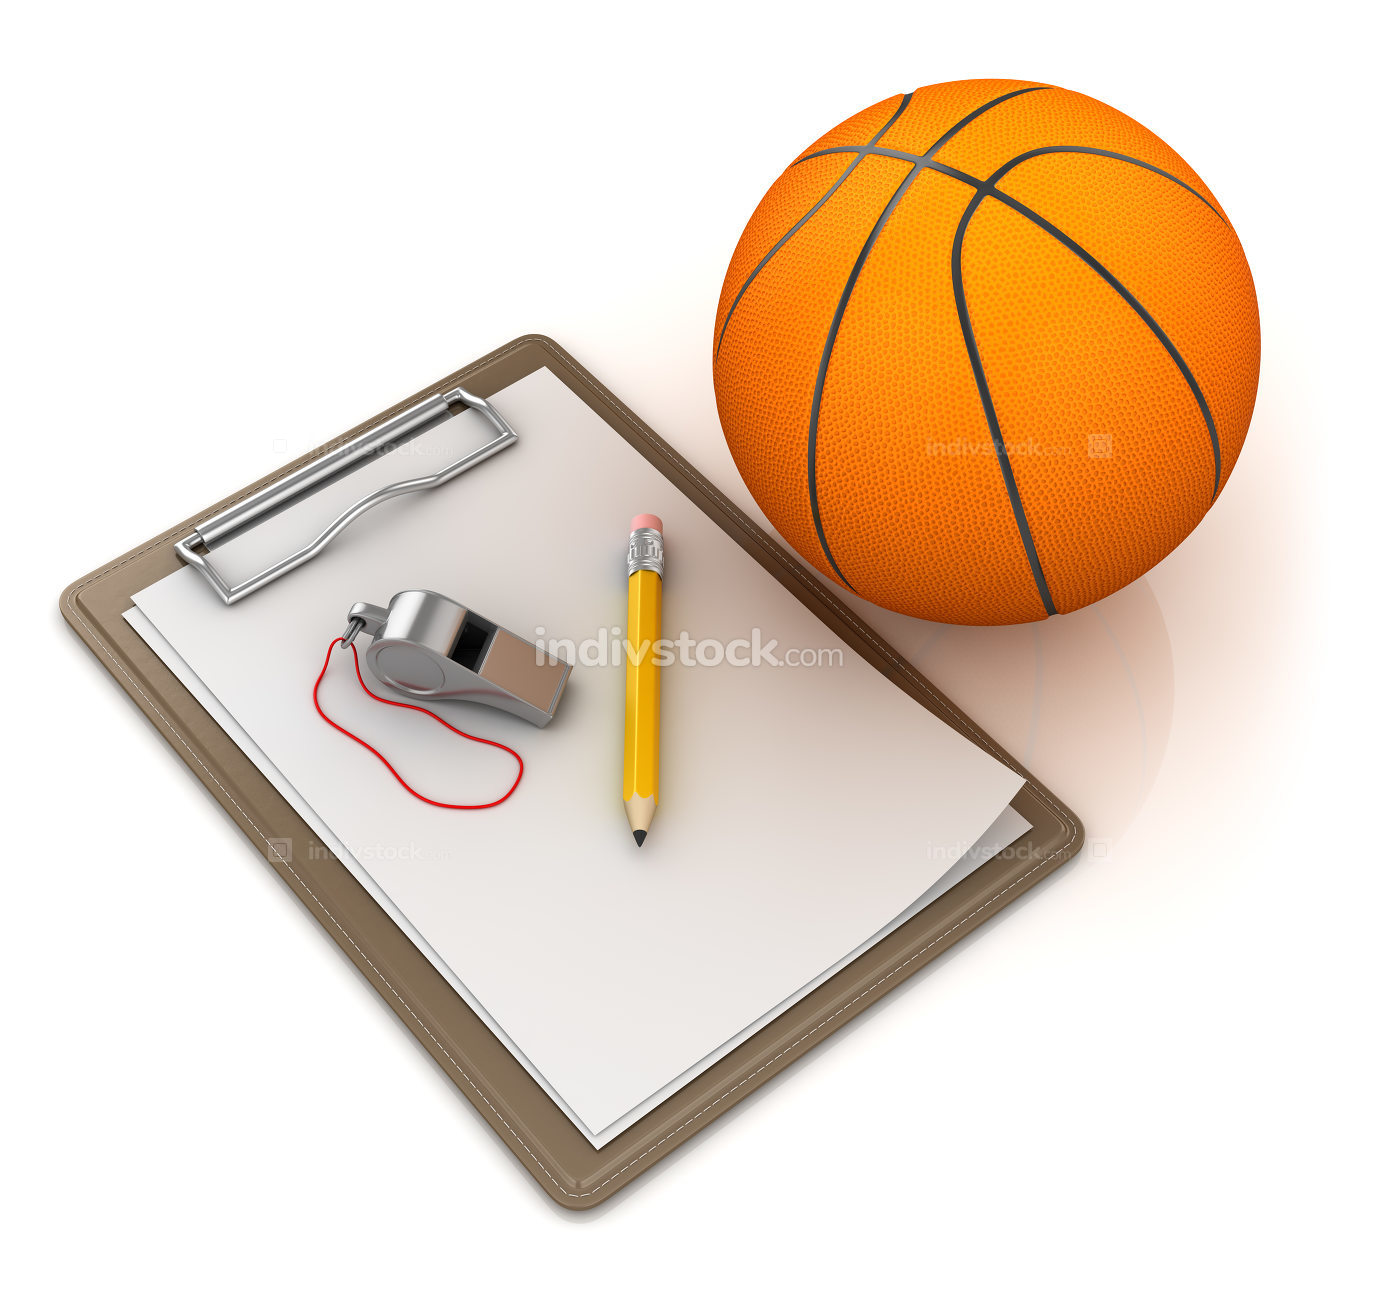 Notepad with Basketball